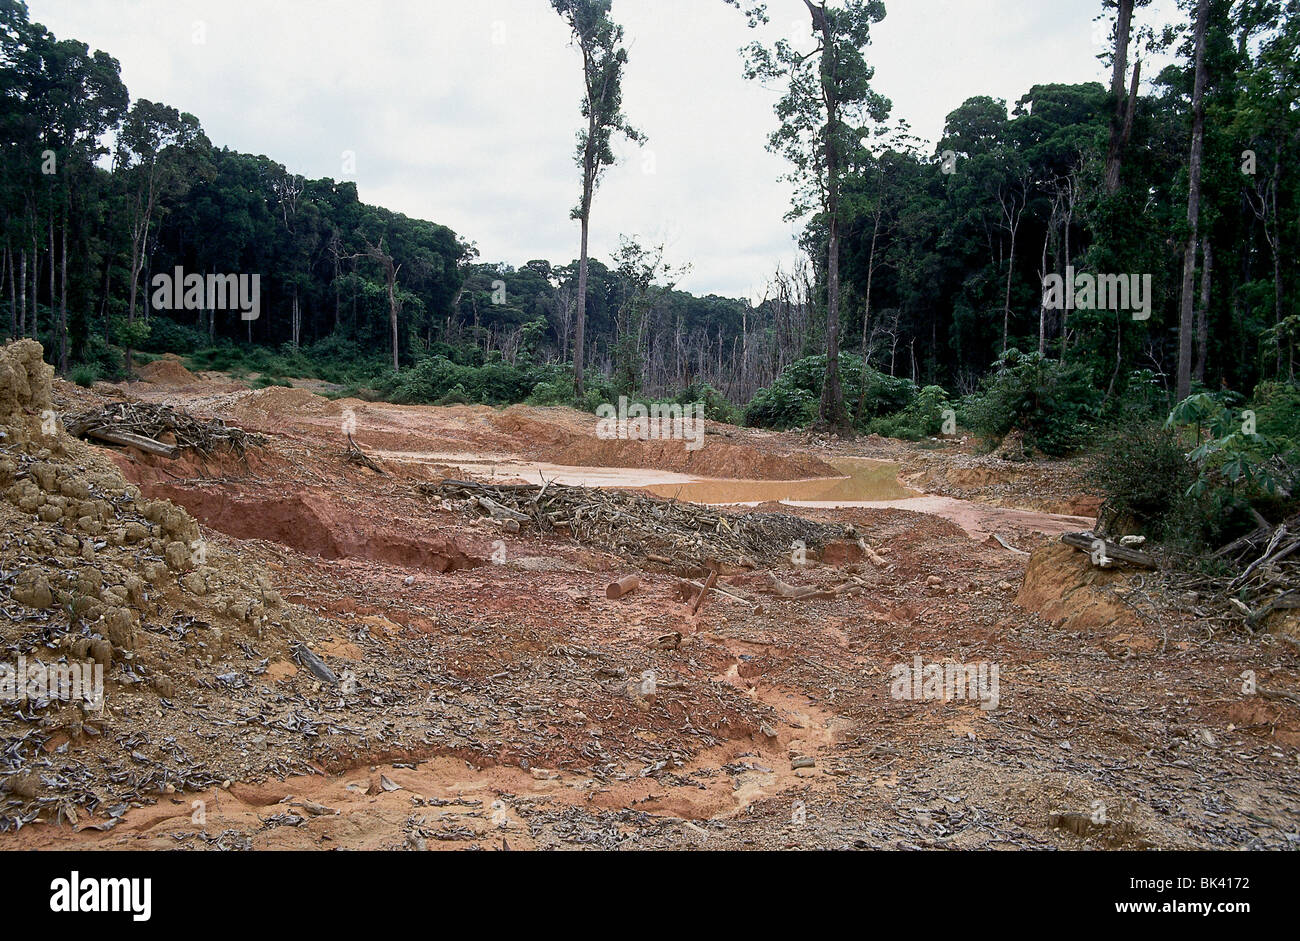 An analysis of the issue of gold mining in the amazon tropical rainforest region